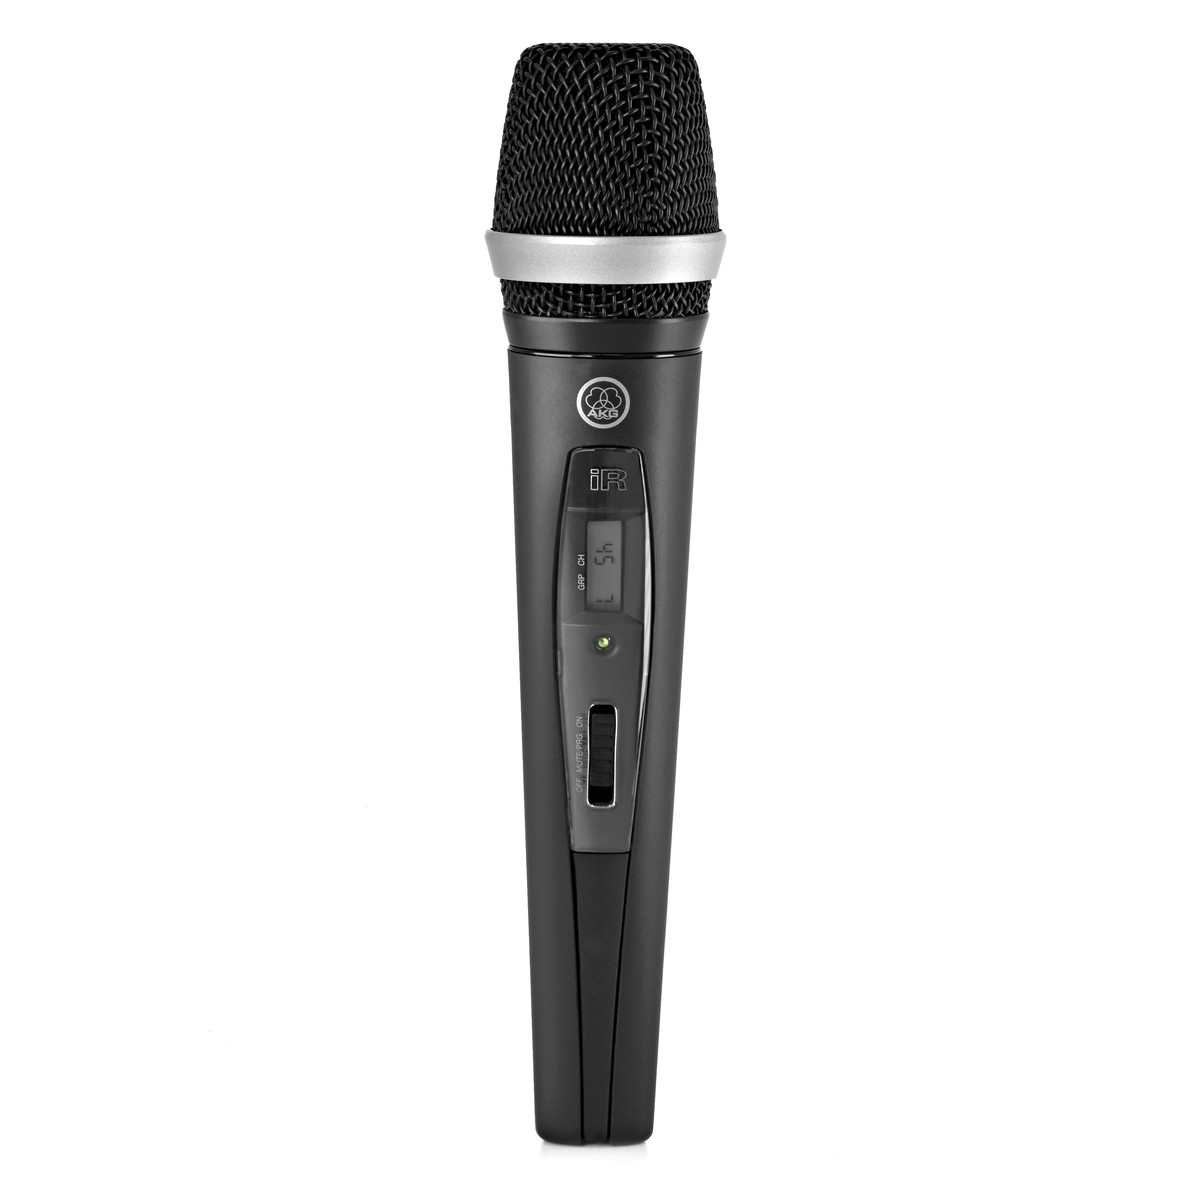 akg ht 470 d5 band 6 wireless handheld microphone at gear4music. Black Bedroom Furniture Sets. Home Design Ideas